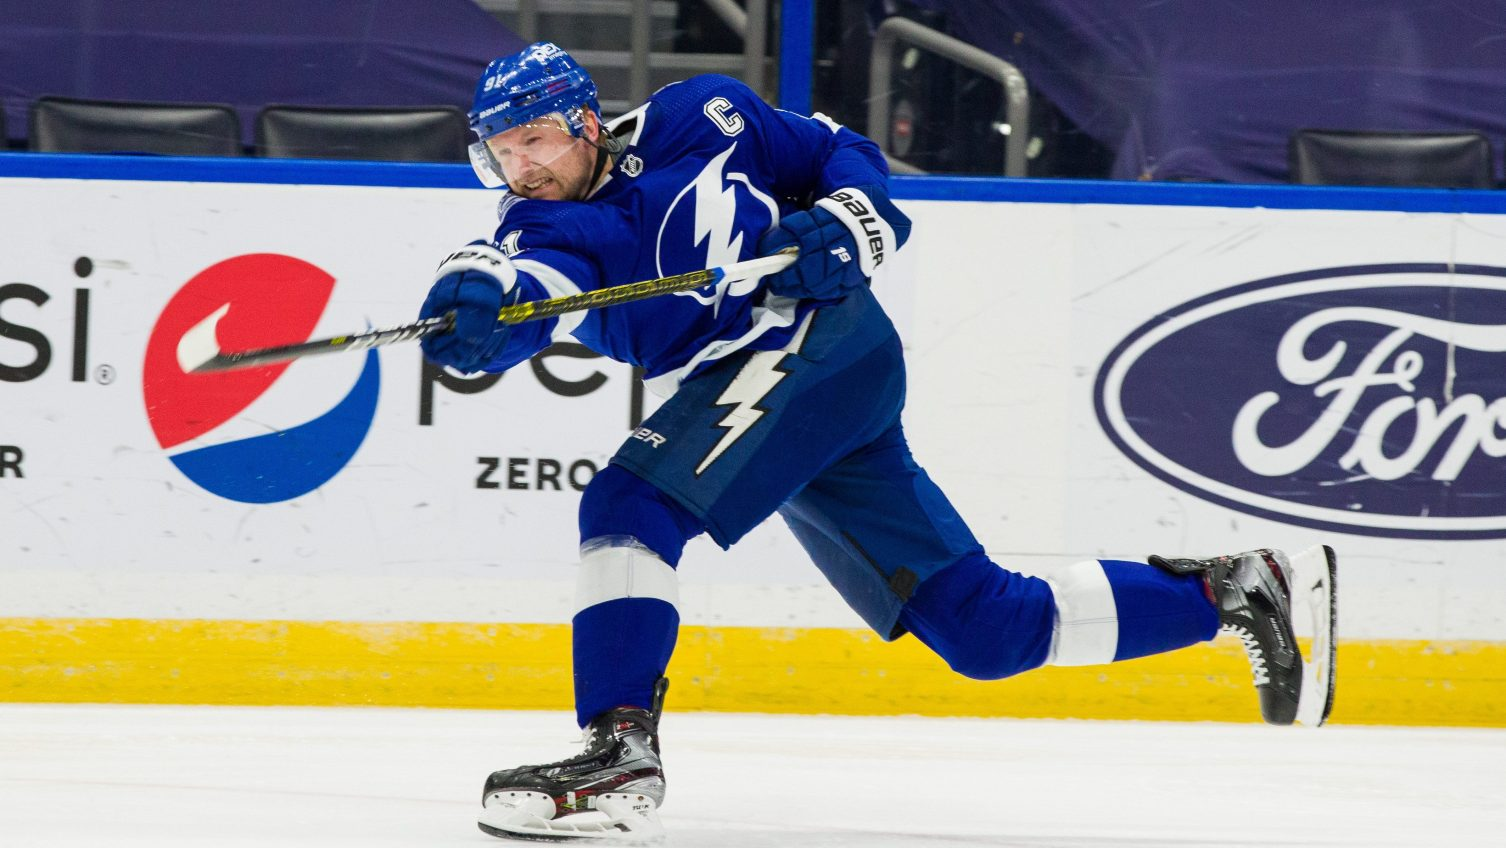 Stamkos' Game 5 breakout just an extra for Lightning offense